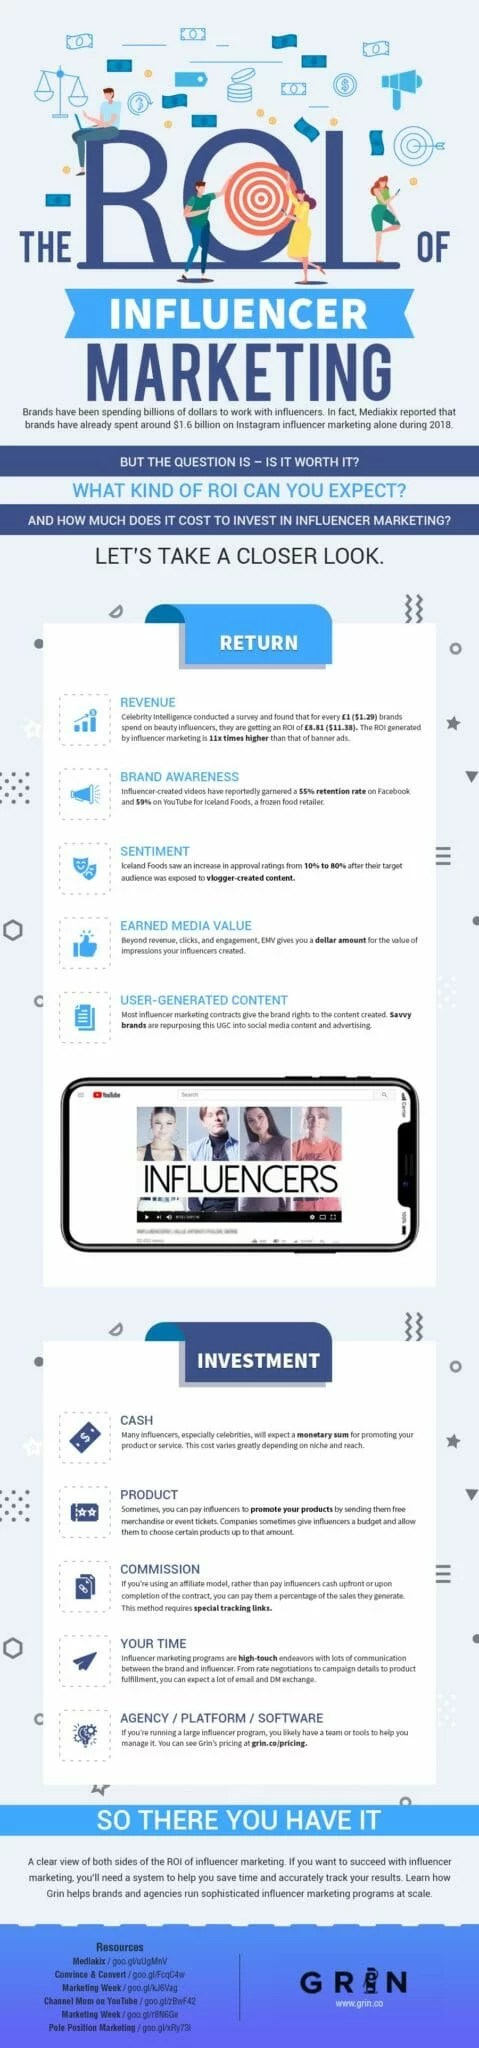 ROI-of-Influencer-Marketing-infographic